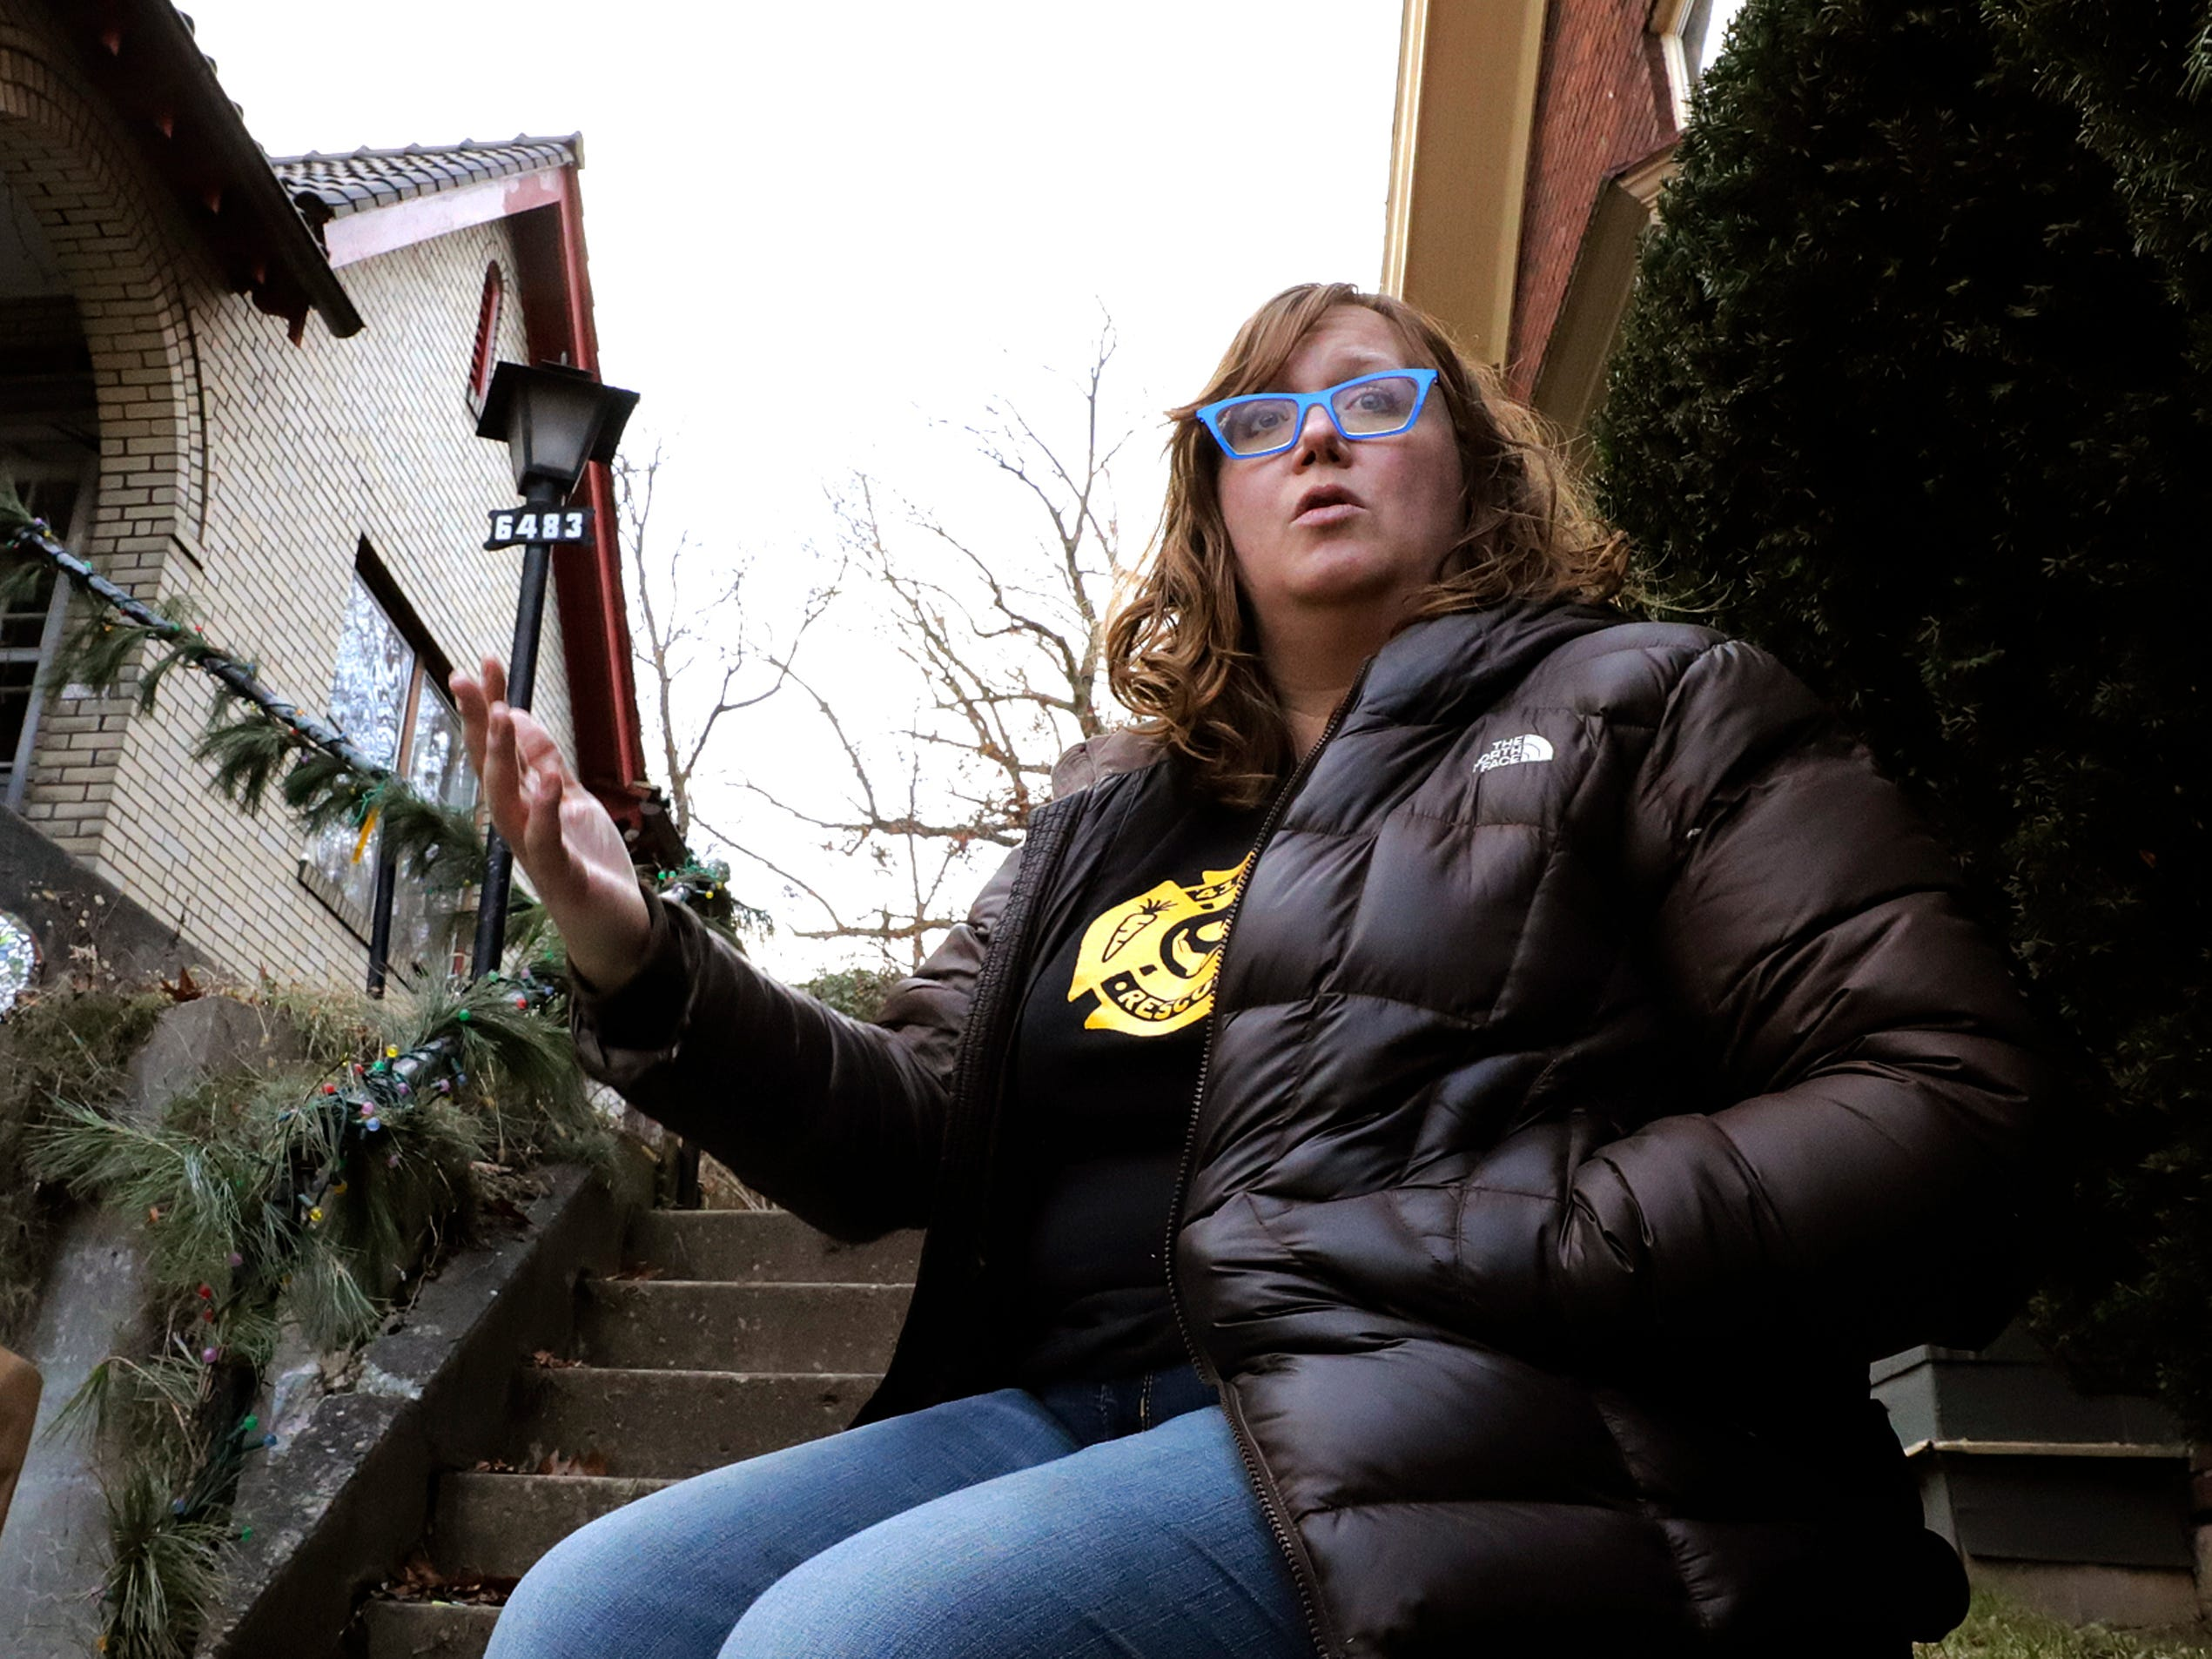 Rebecca Maclean, a housing program specialist for the U.S. Department of Housing and Urban Development in Pittsburgh, sits outside her home in Pittsburgh, Jan. 3, 2019. Maclean, 41, has been on furlough since Dec. 21.  Her family's financial outlook isn't dire yet since her husband, Dan Thompson, owns a knife-making business and works as an elected constable. But the couple recently sat down to prioritize which bills must be paid on time and which can be paid late without dinging their credit history.